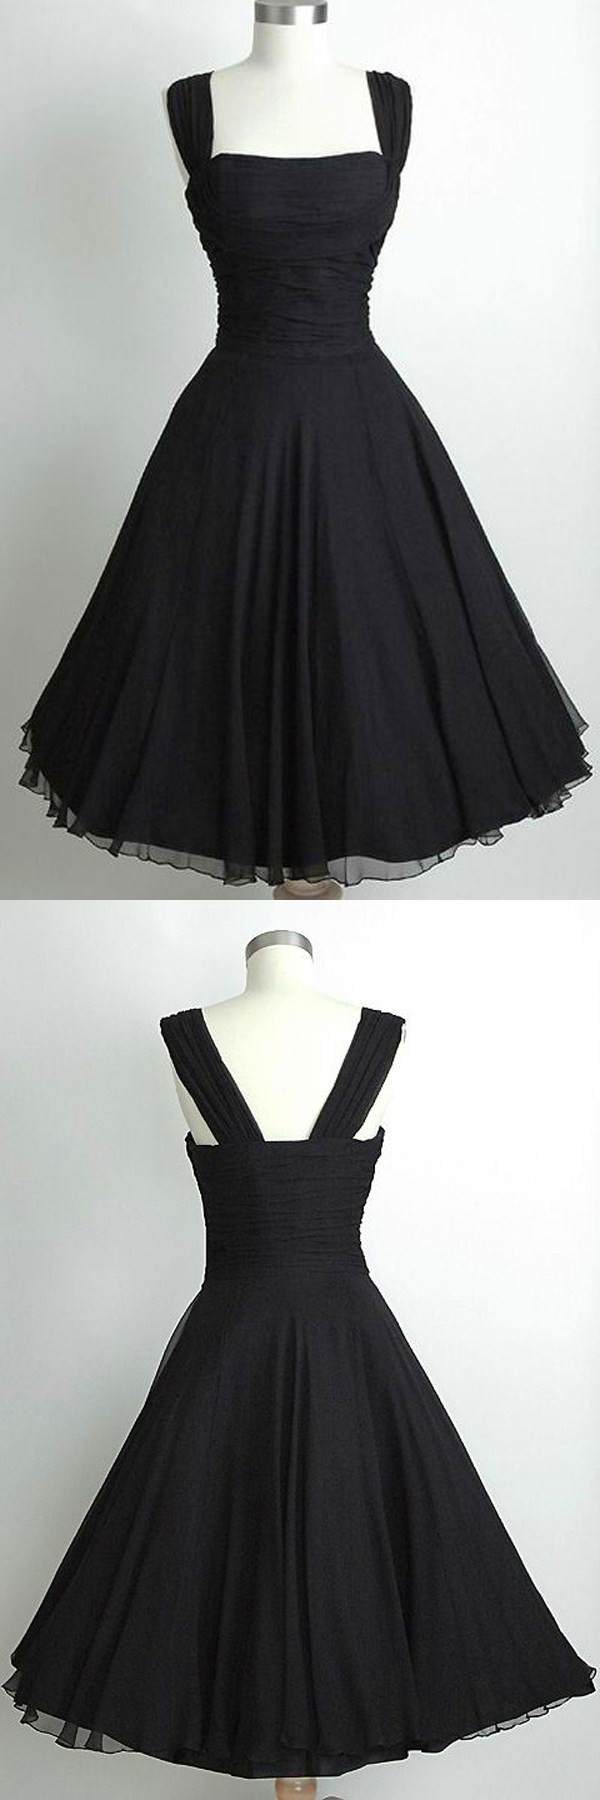 Vintage square tea length sleeveless black homecoming dress ruched